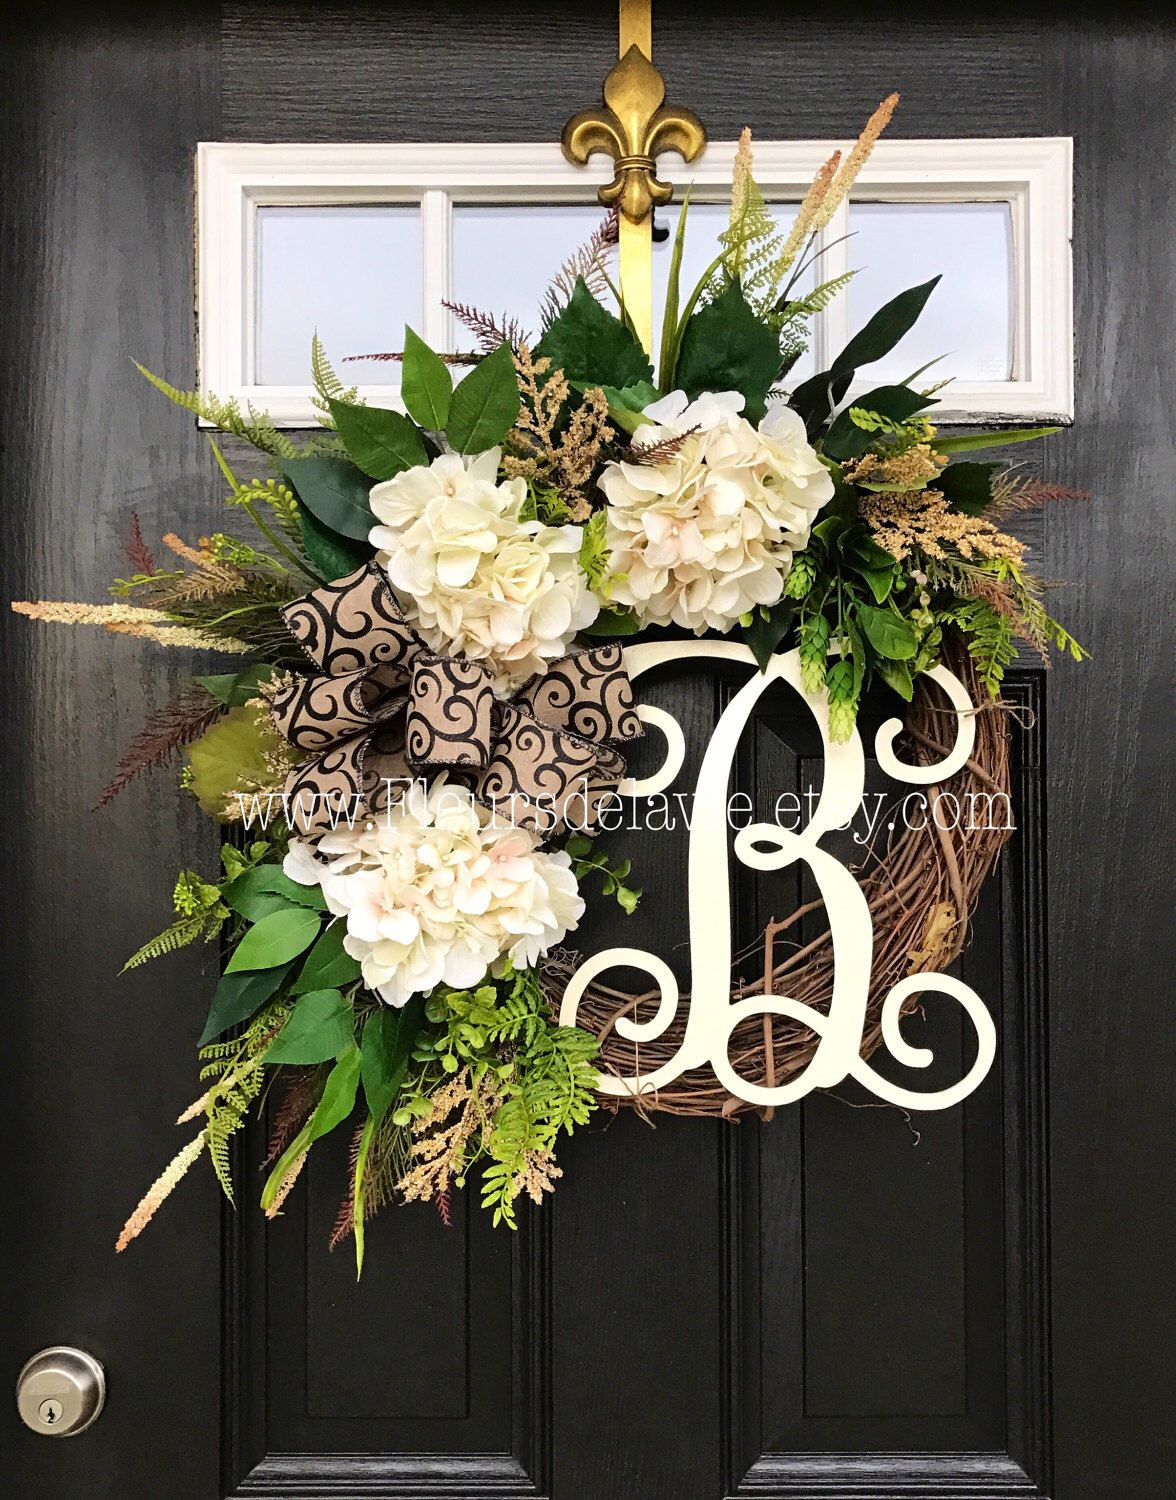 Modern wreaths for front door - Wreaths For Front Door Front Door Wreaths Fall Door Wreaths